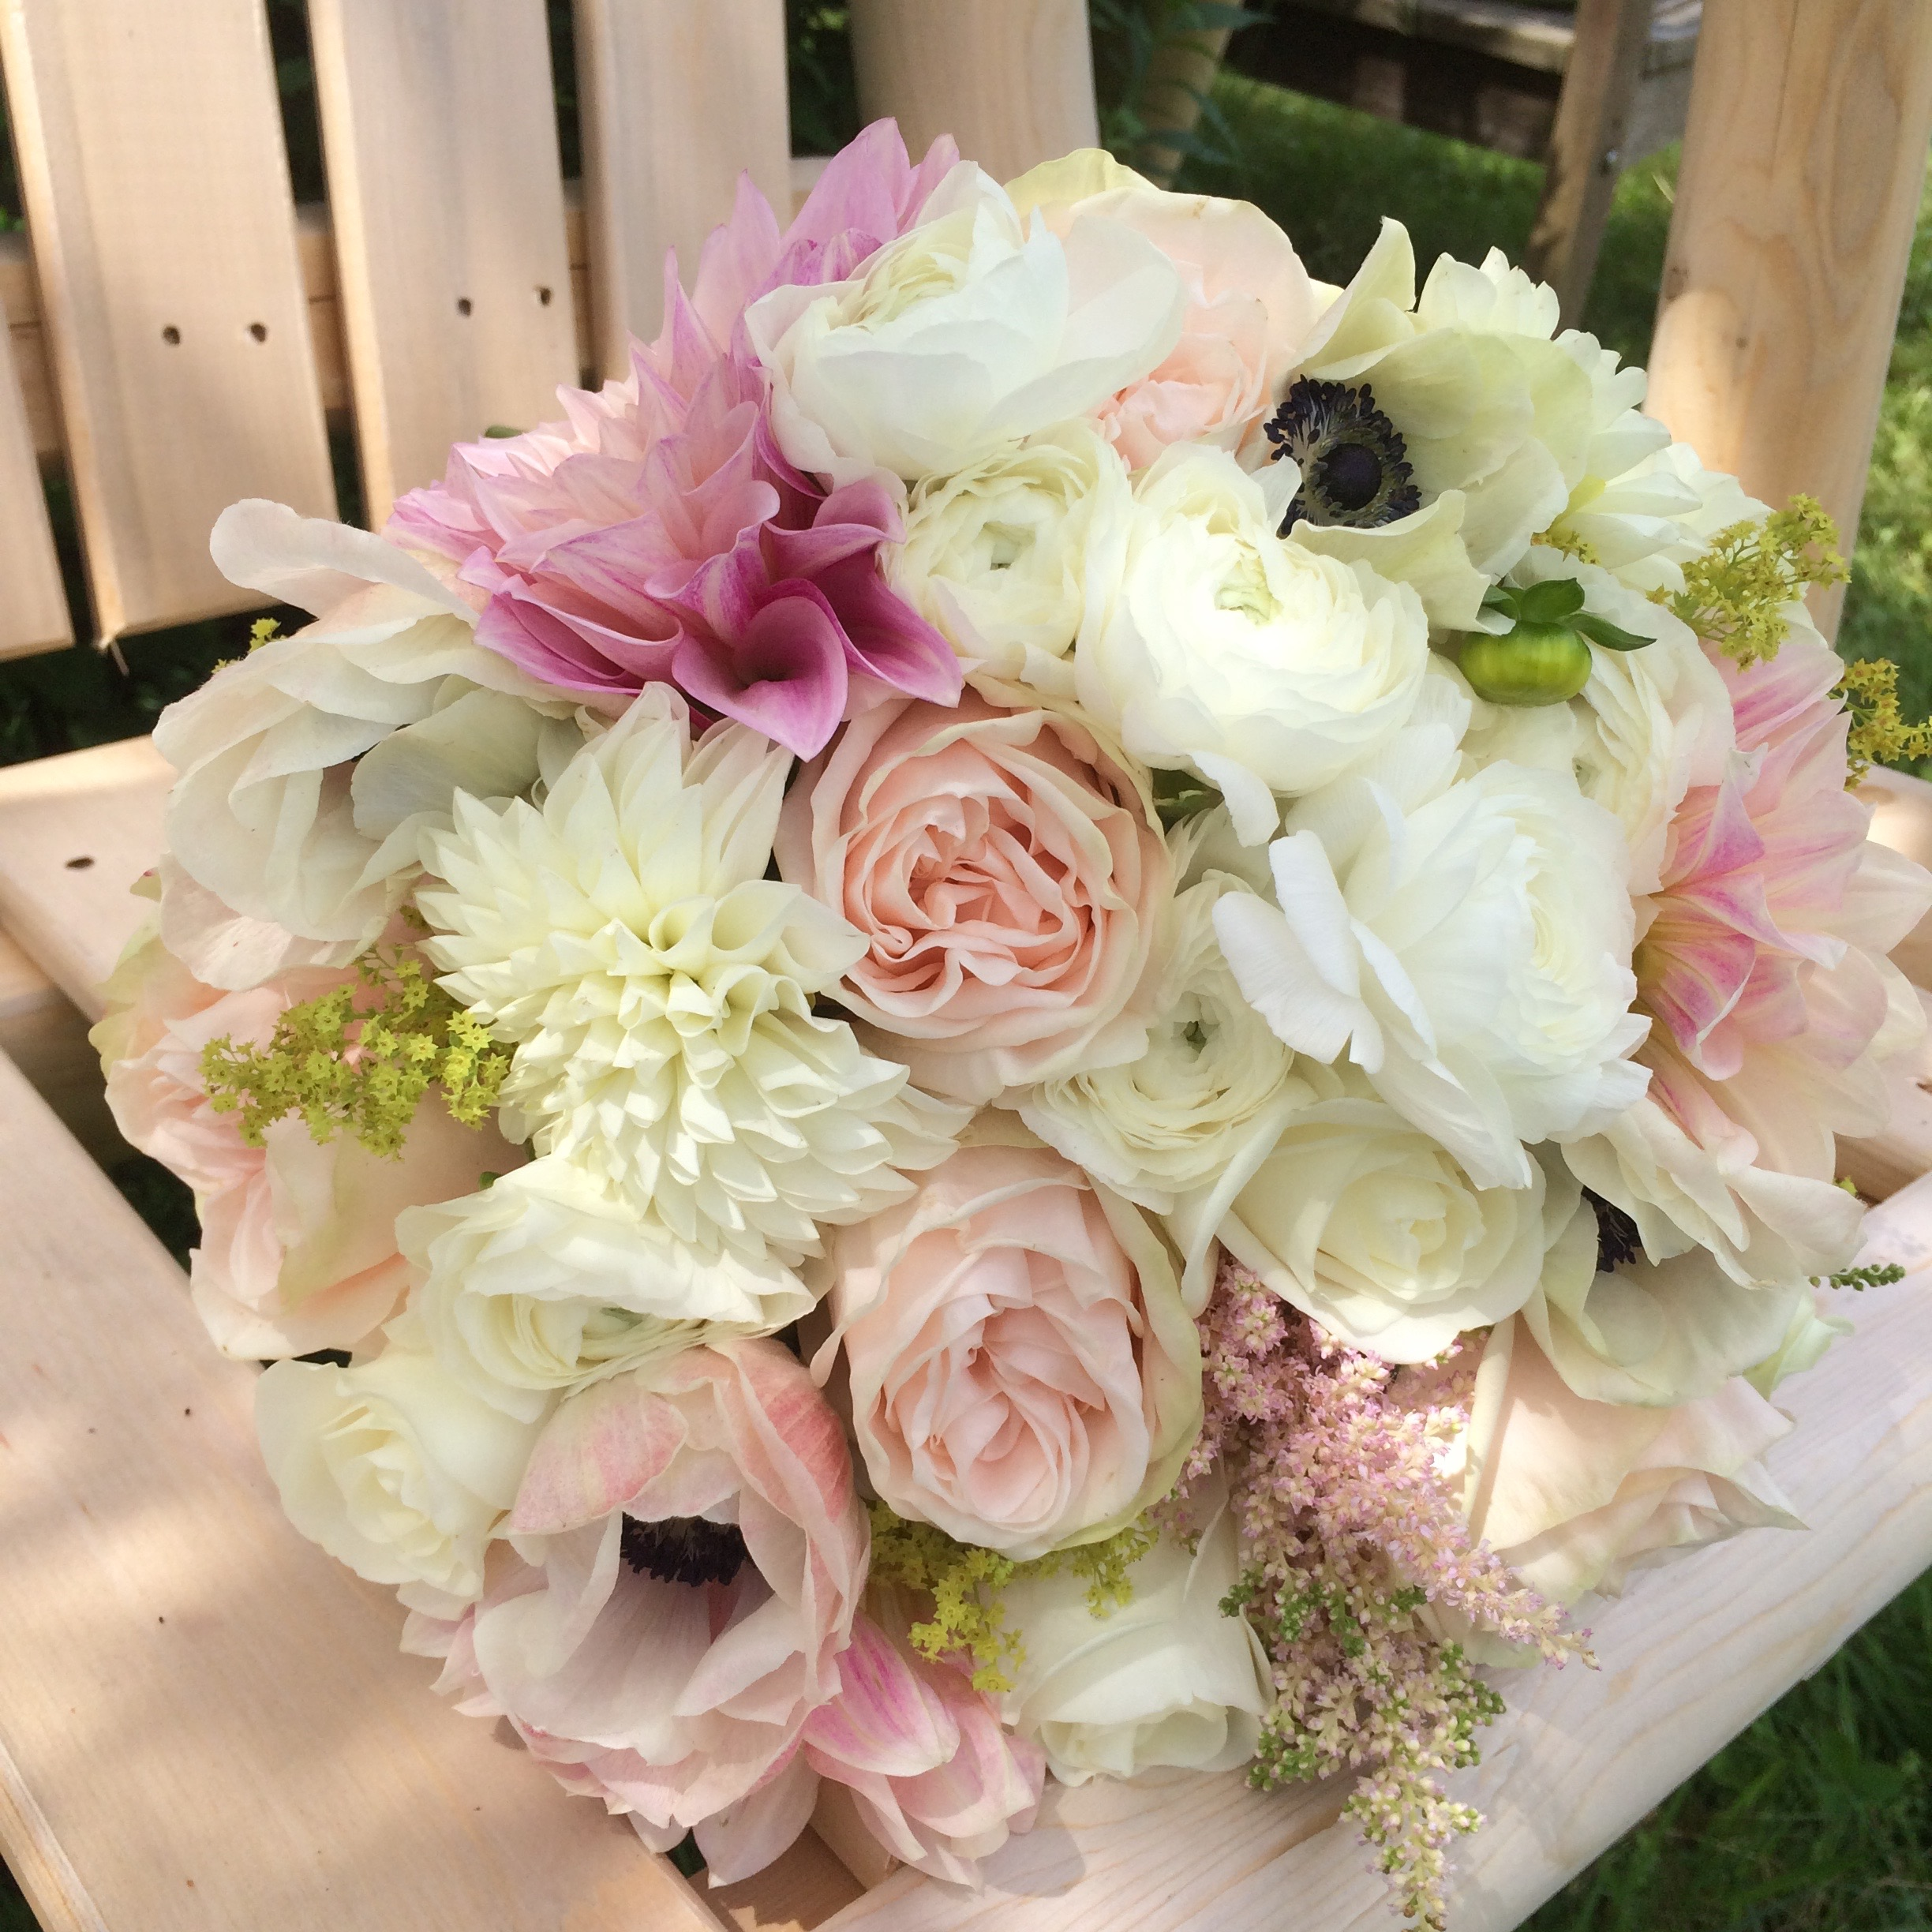 Blush pink and white wedding flowers, Vermont Wedding Flowers, Floral Artistry